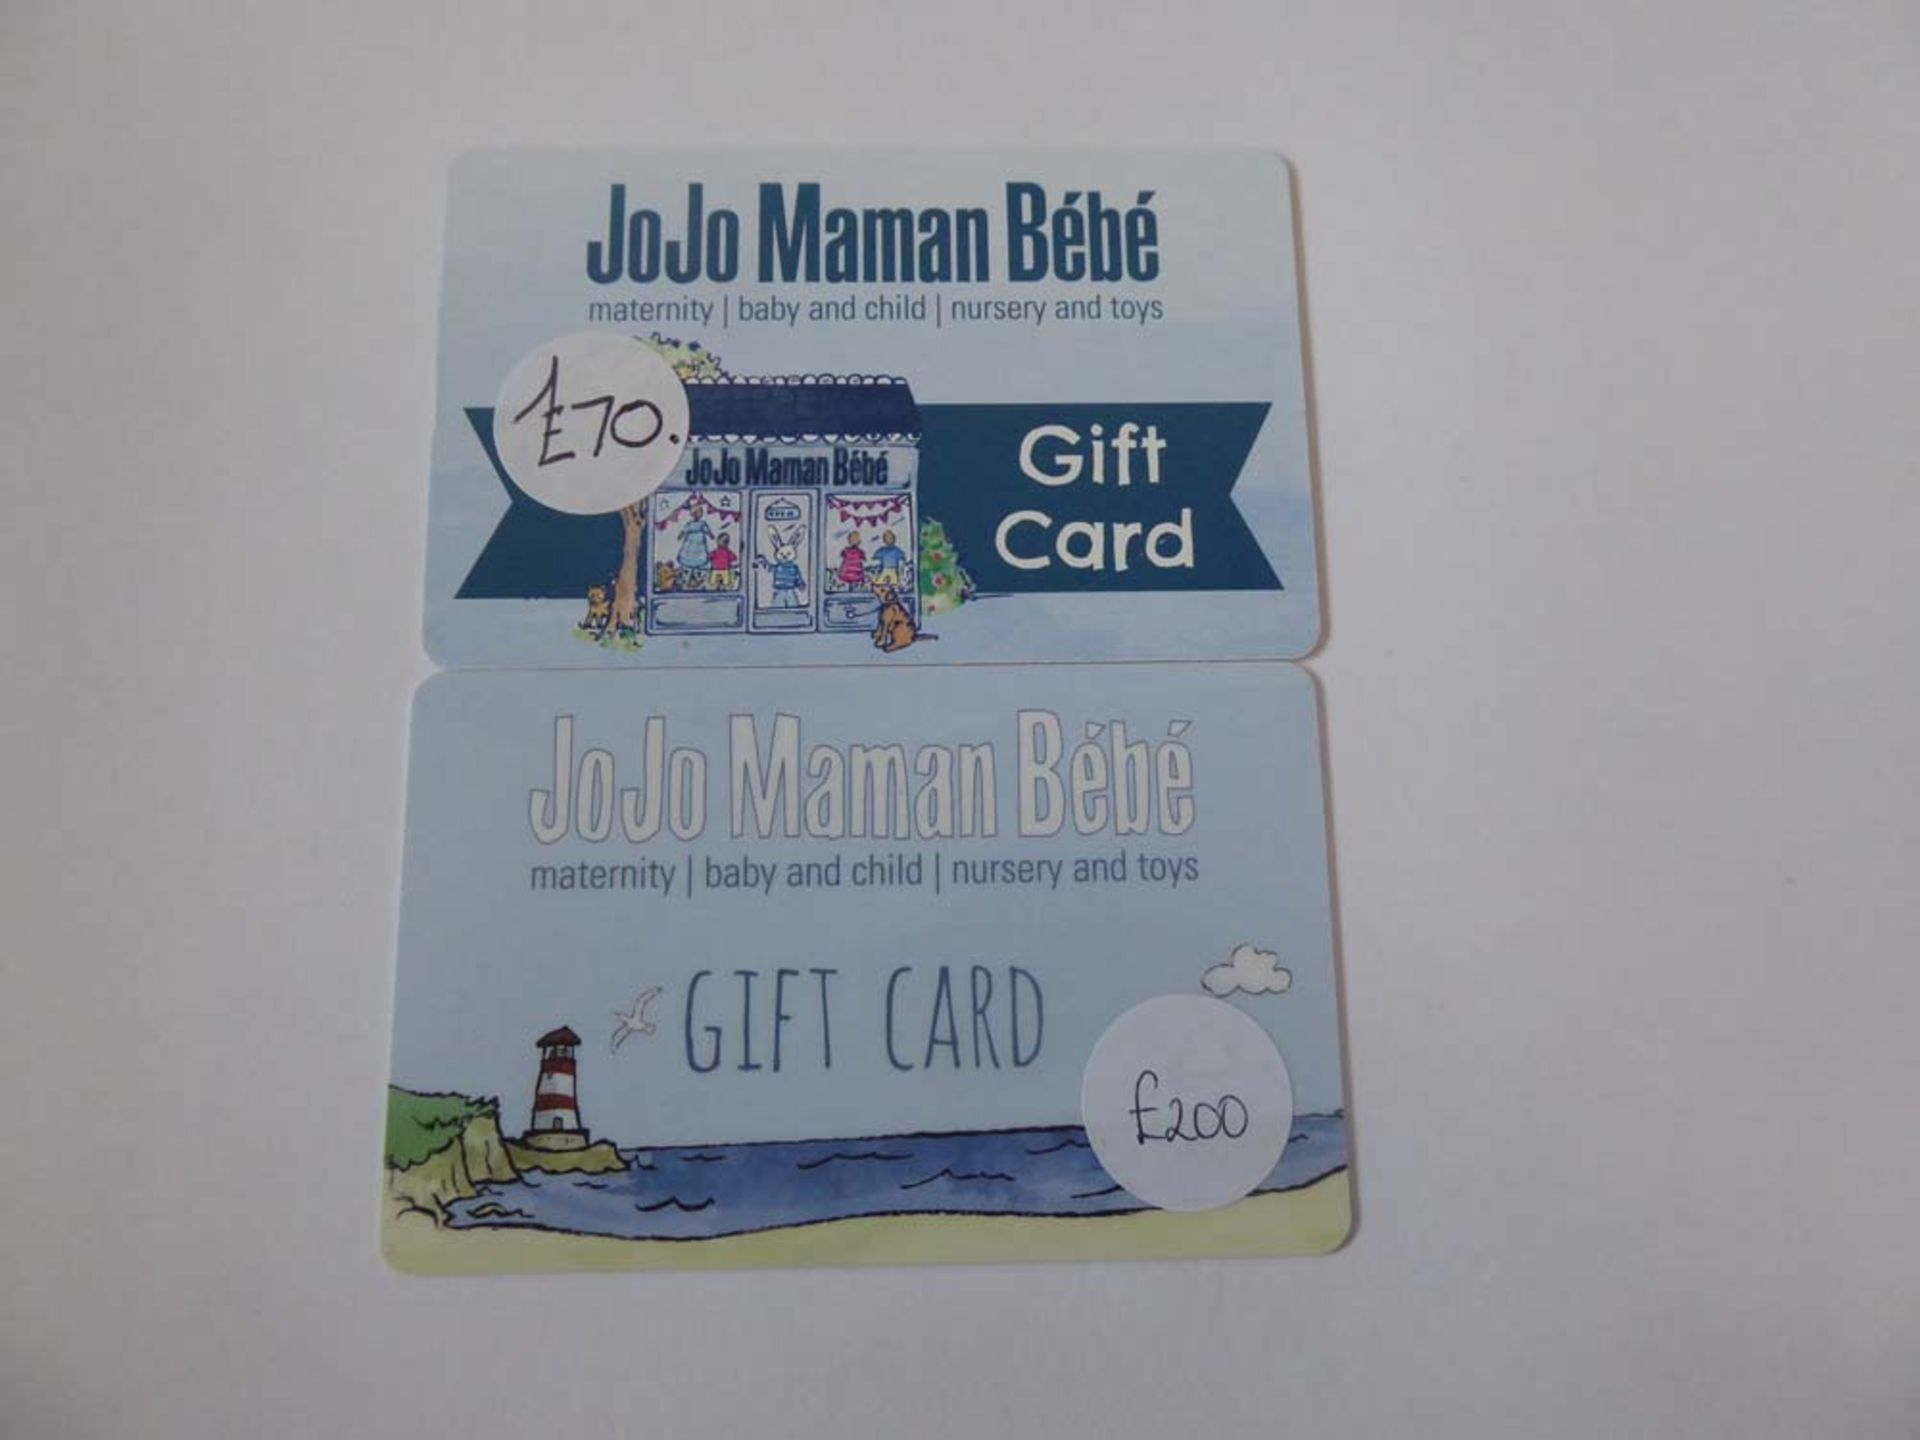 Jojo Mamam Bebe (x2) - Total face value £270